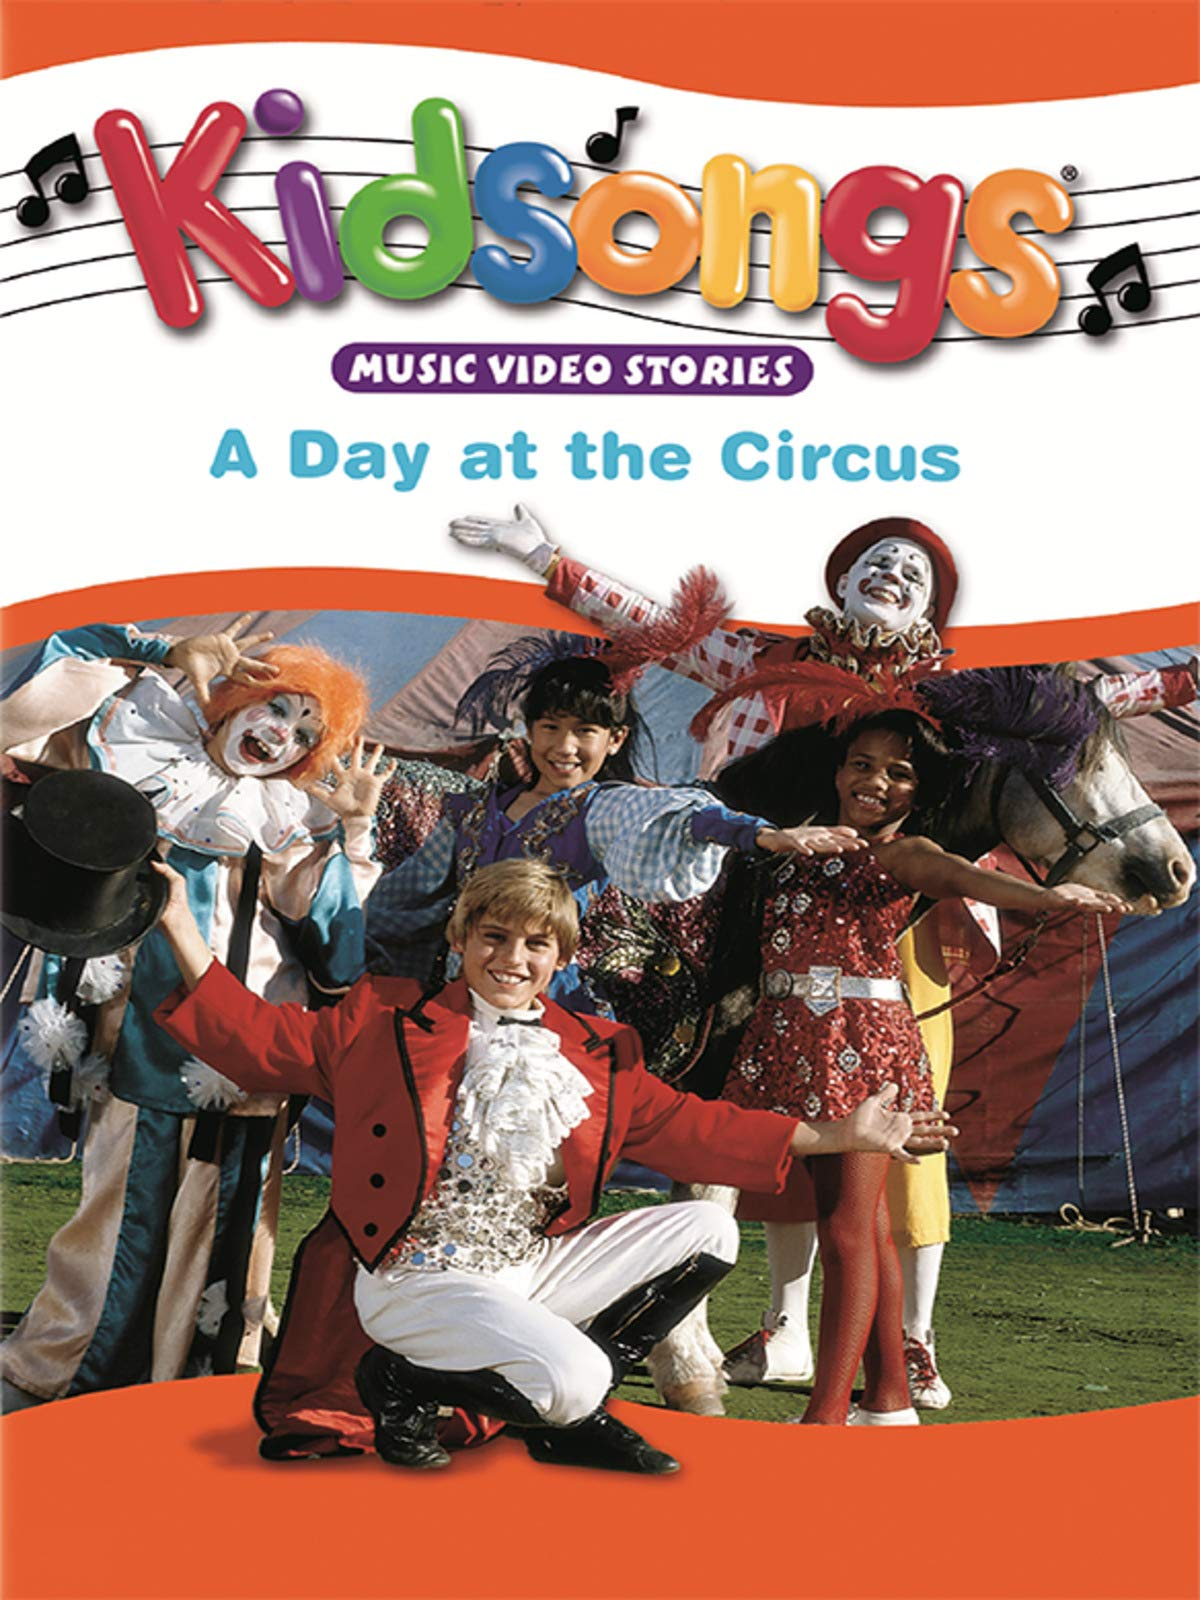 Kidsongs: A Day at the Circus on Amazon Prime Video UK